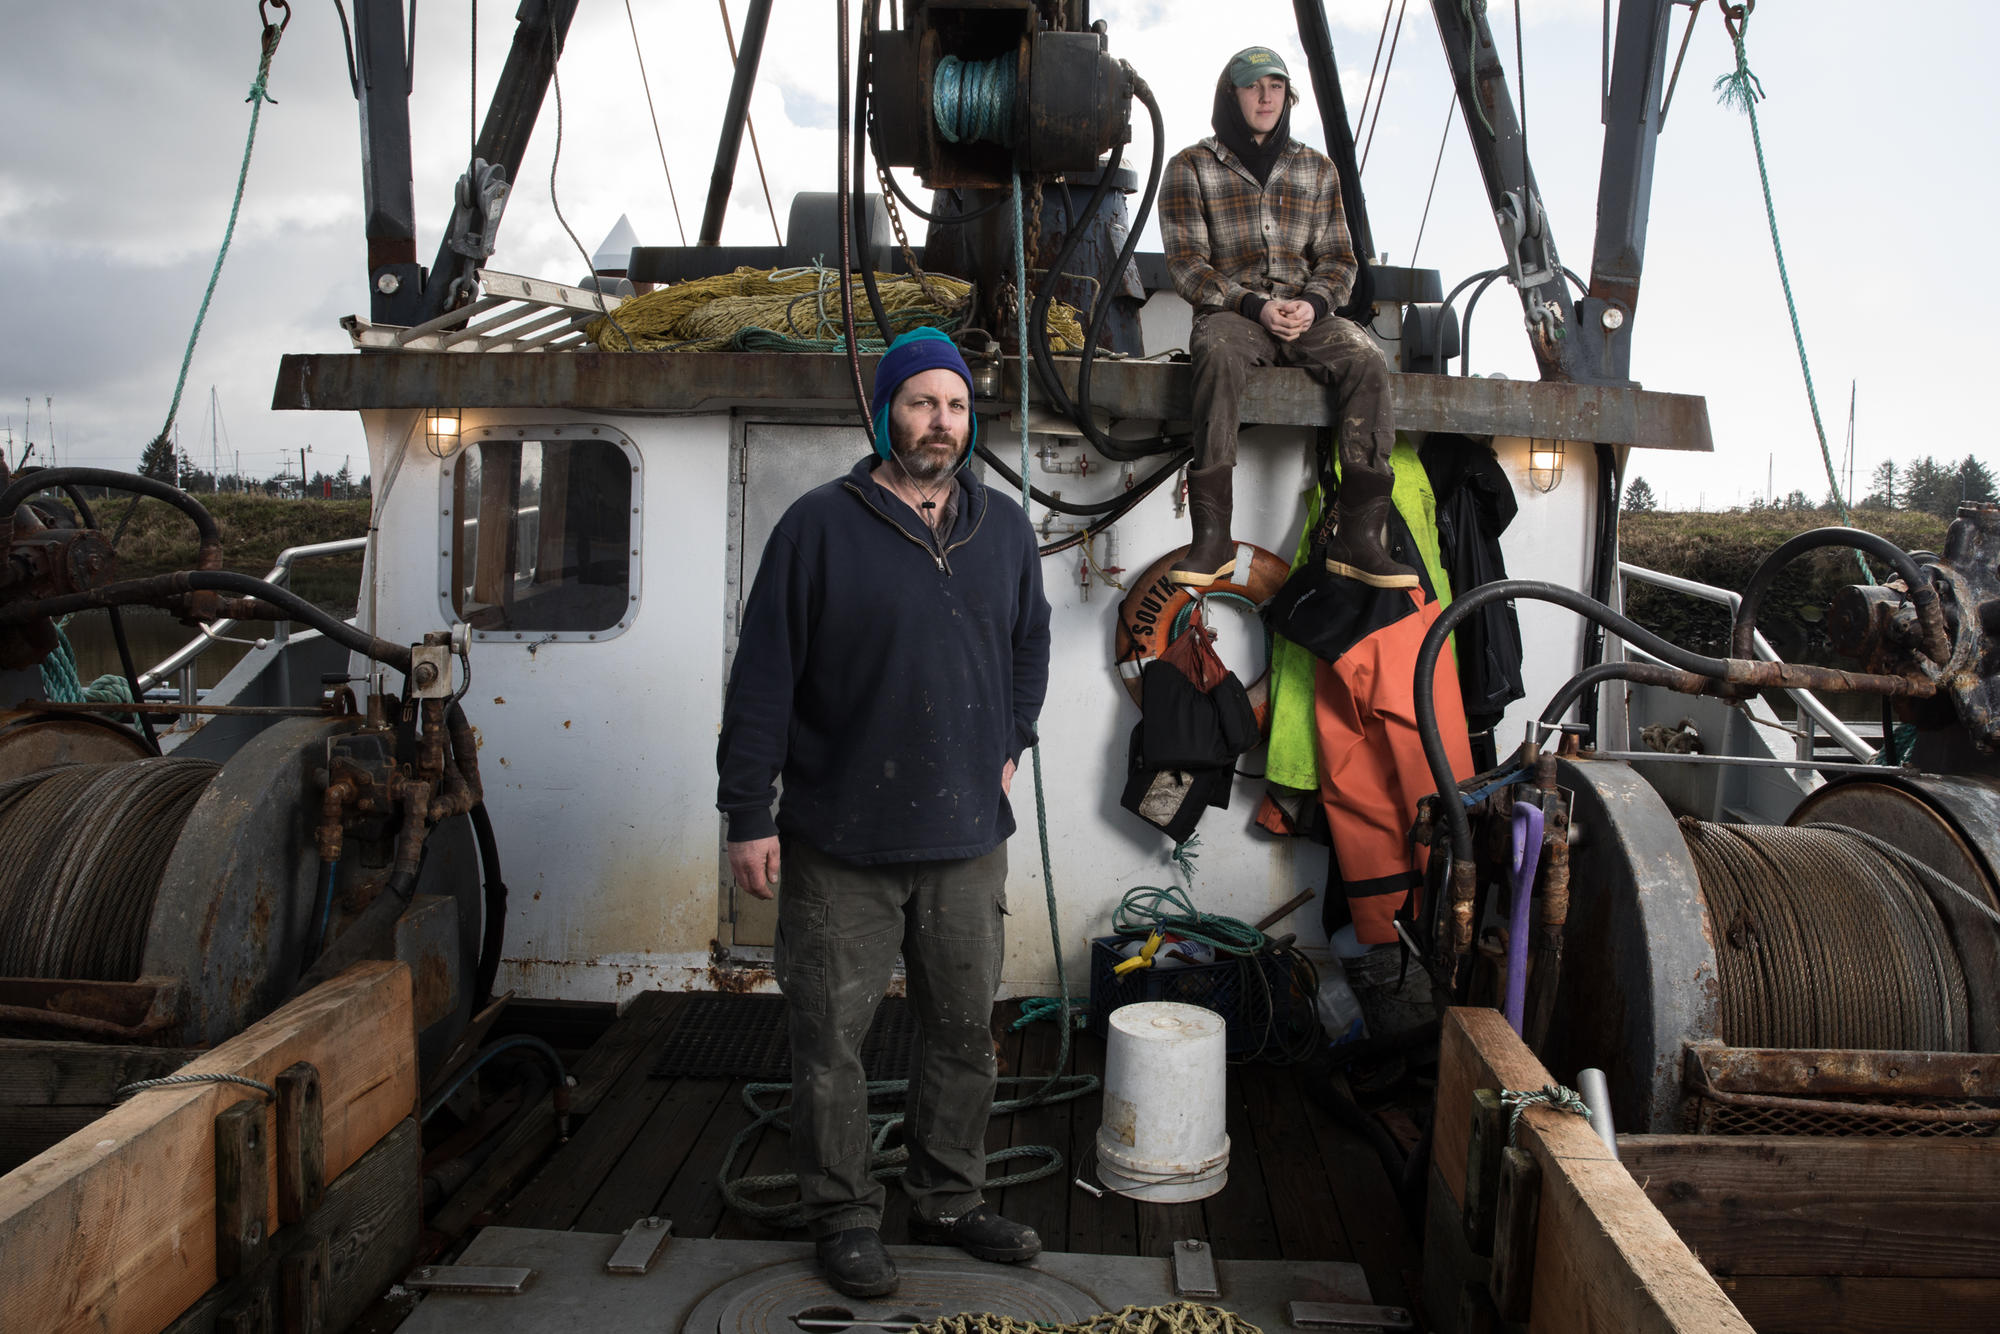 Rob Seitz and son, James, of fishing boat South Bay at the Warrenton Marina near Astoria. (All photos by Matt M. McKnight/Crosscut)